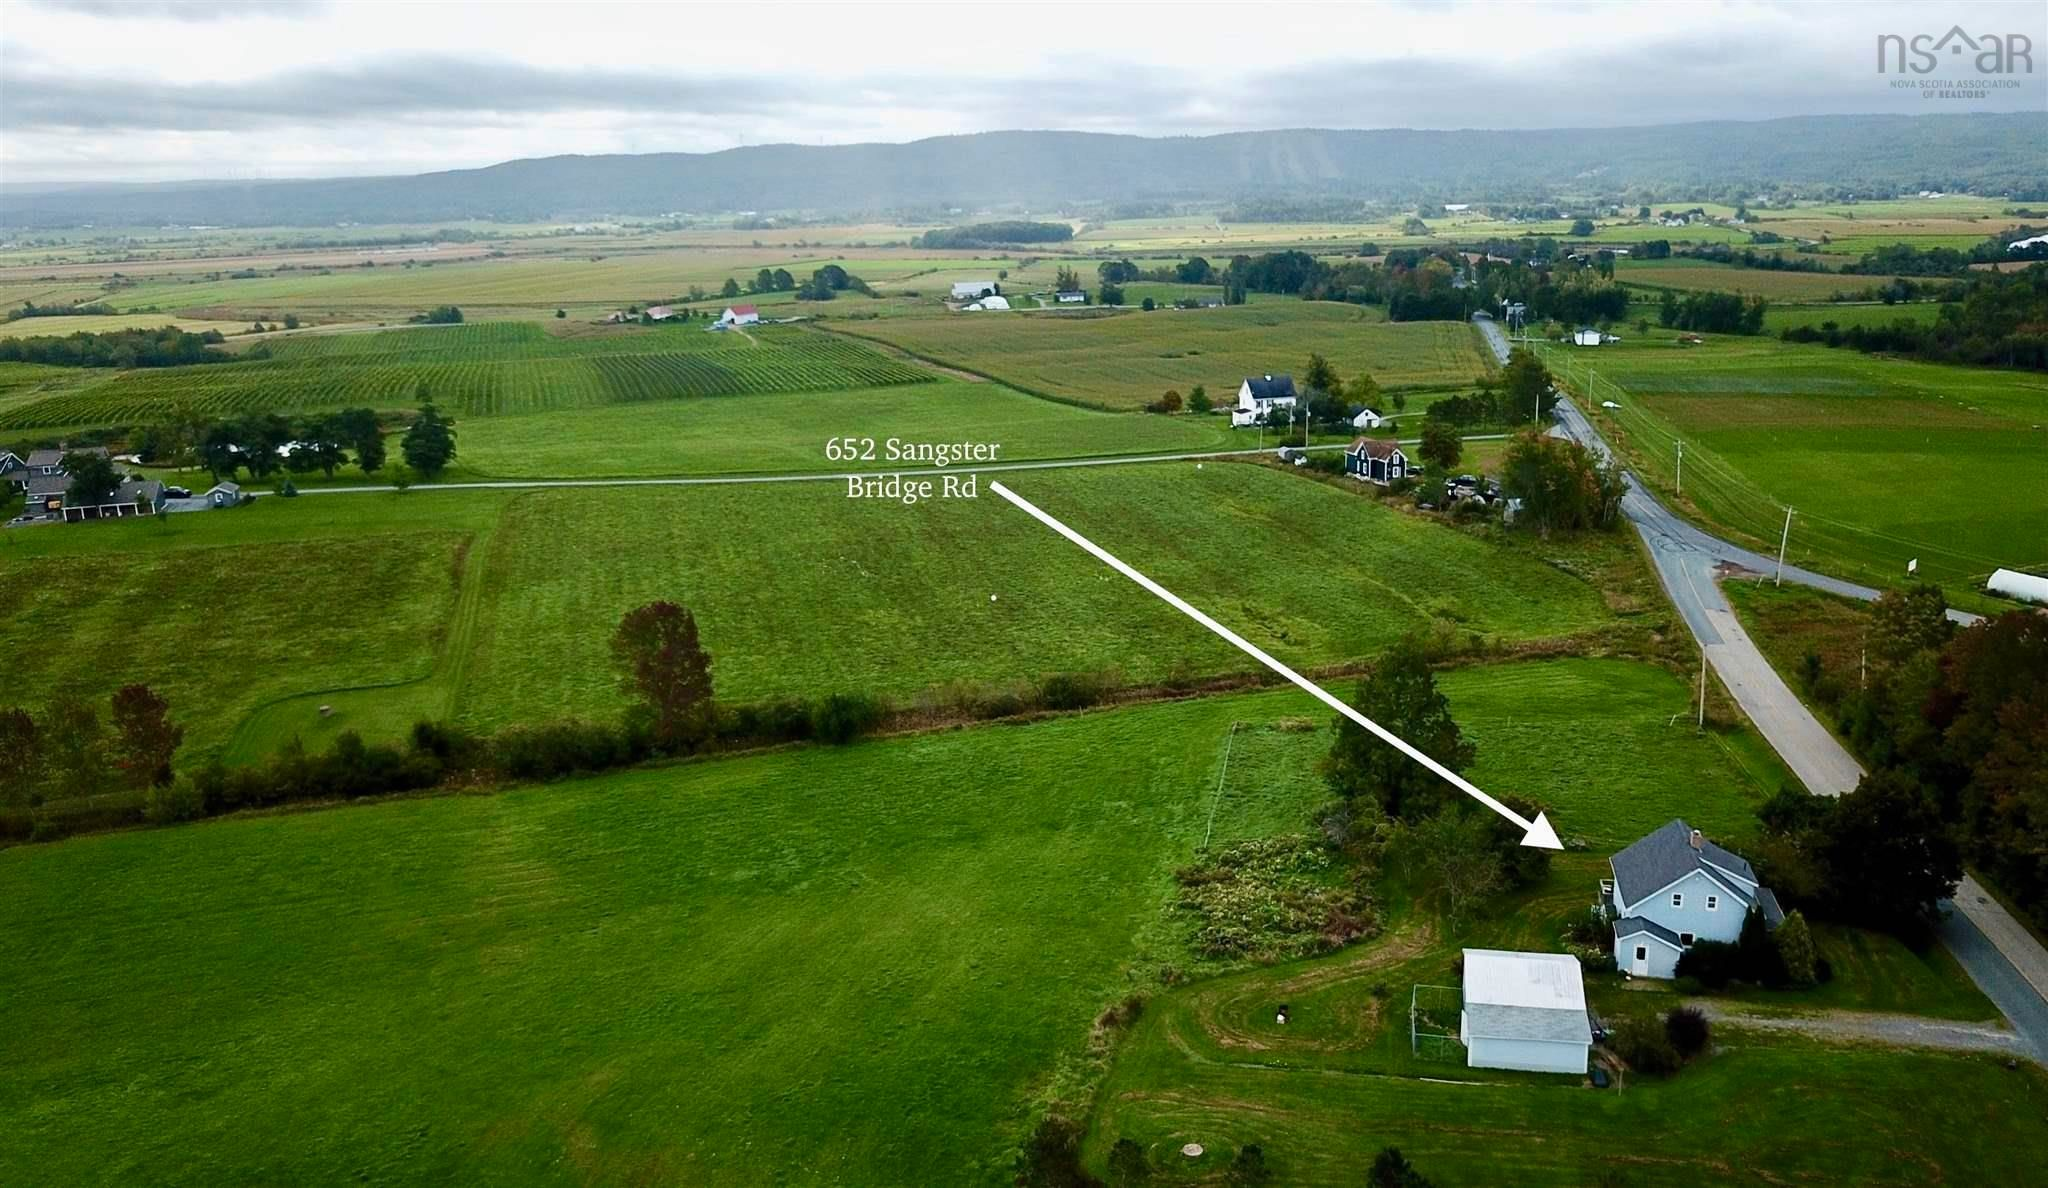 Main Photo: 652 SANGSTER BRIDGE Road in Upper Falmouth: 403-Hants County Residential for sale (Annapolis Valley)  : MLS®# 202124521